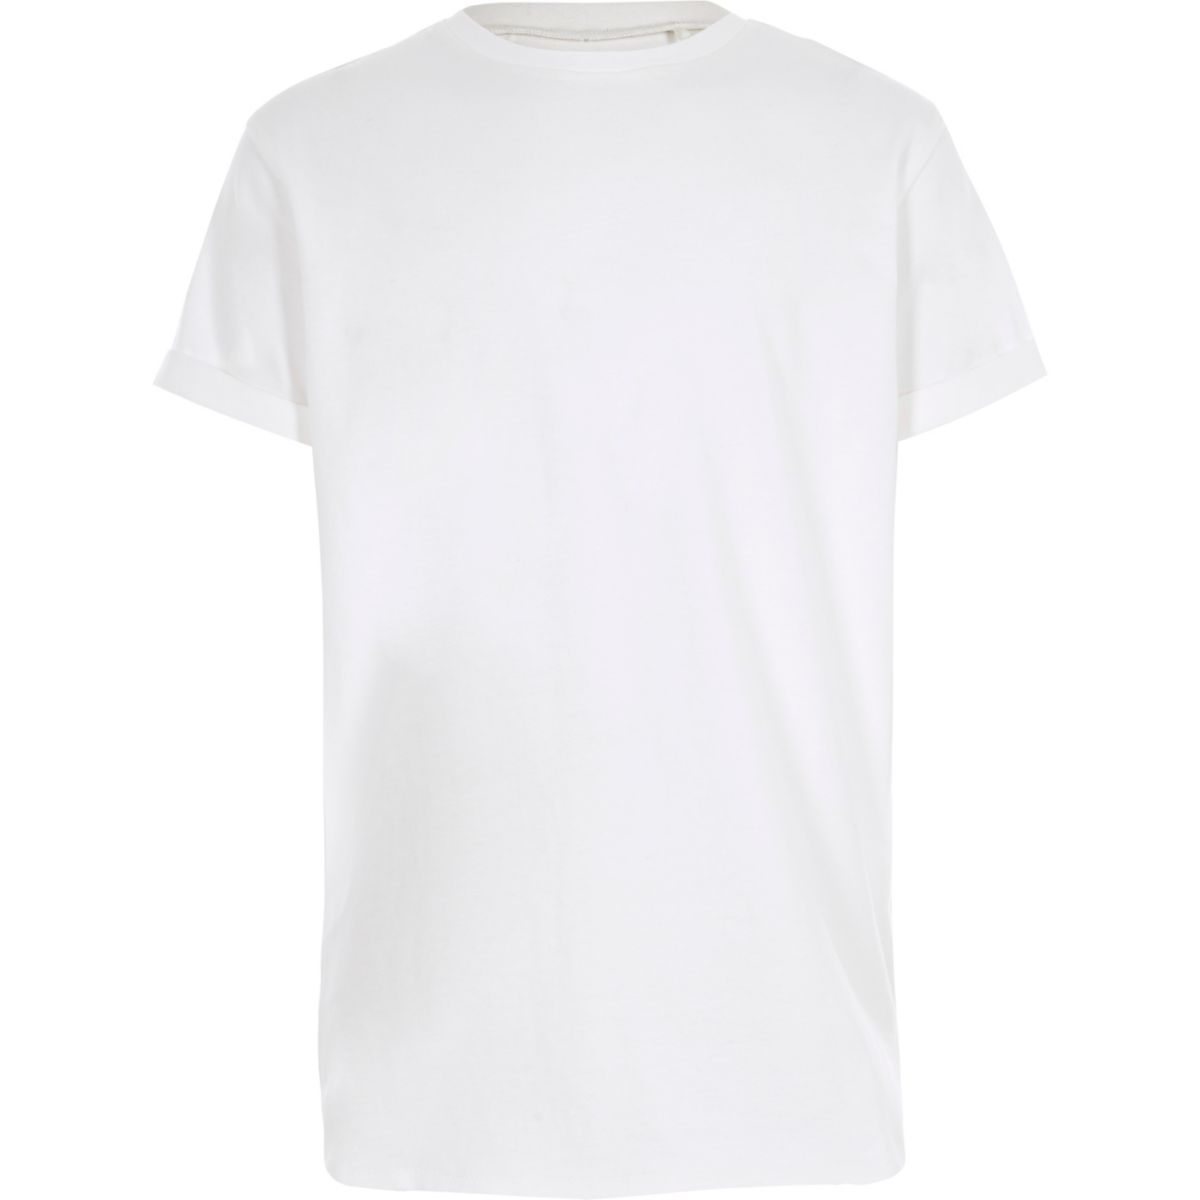 Boys white curved hem longline T-shirt